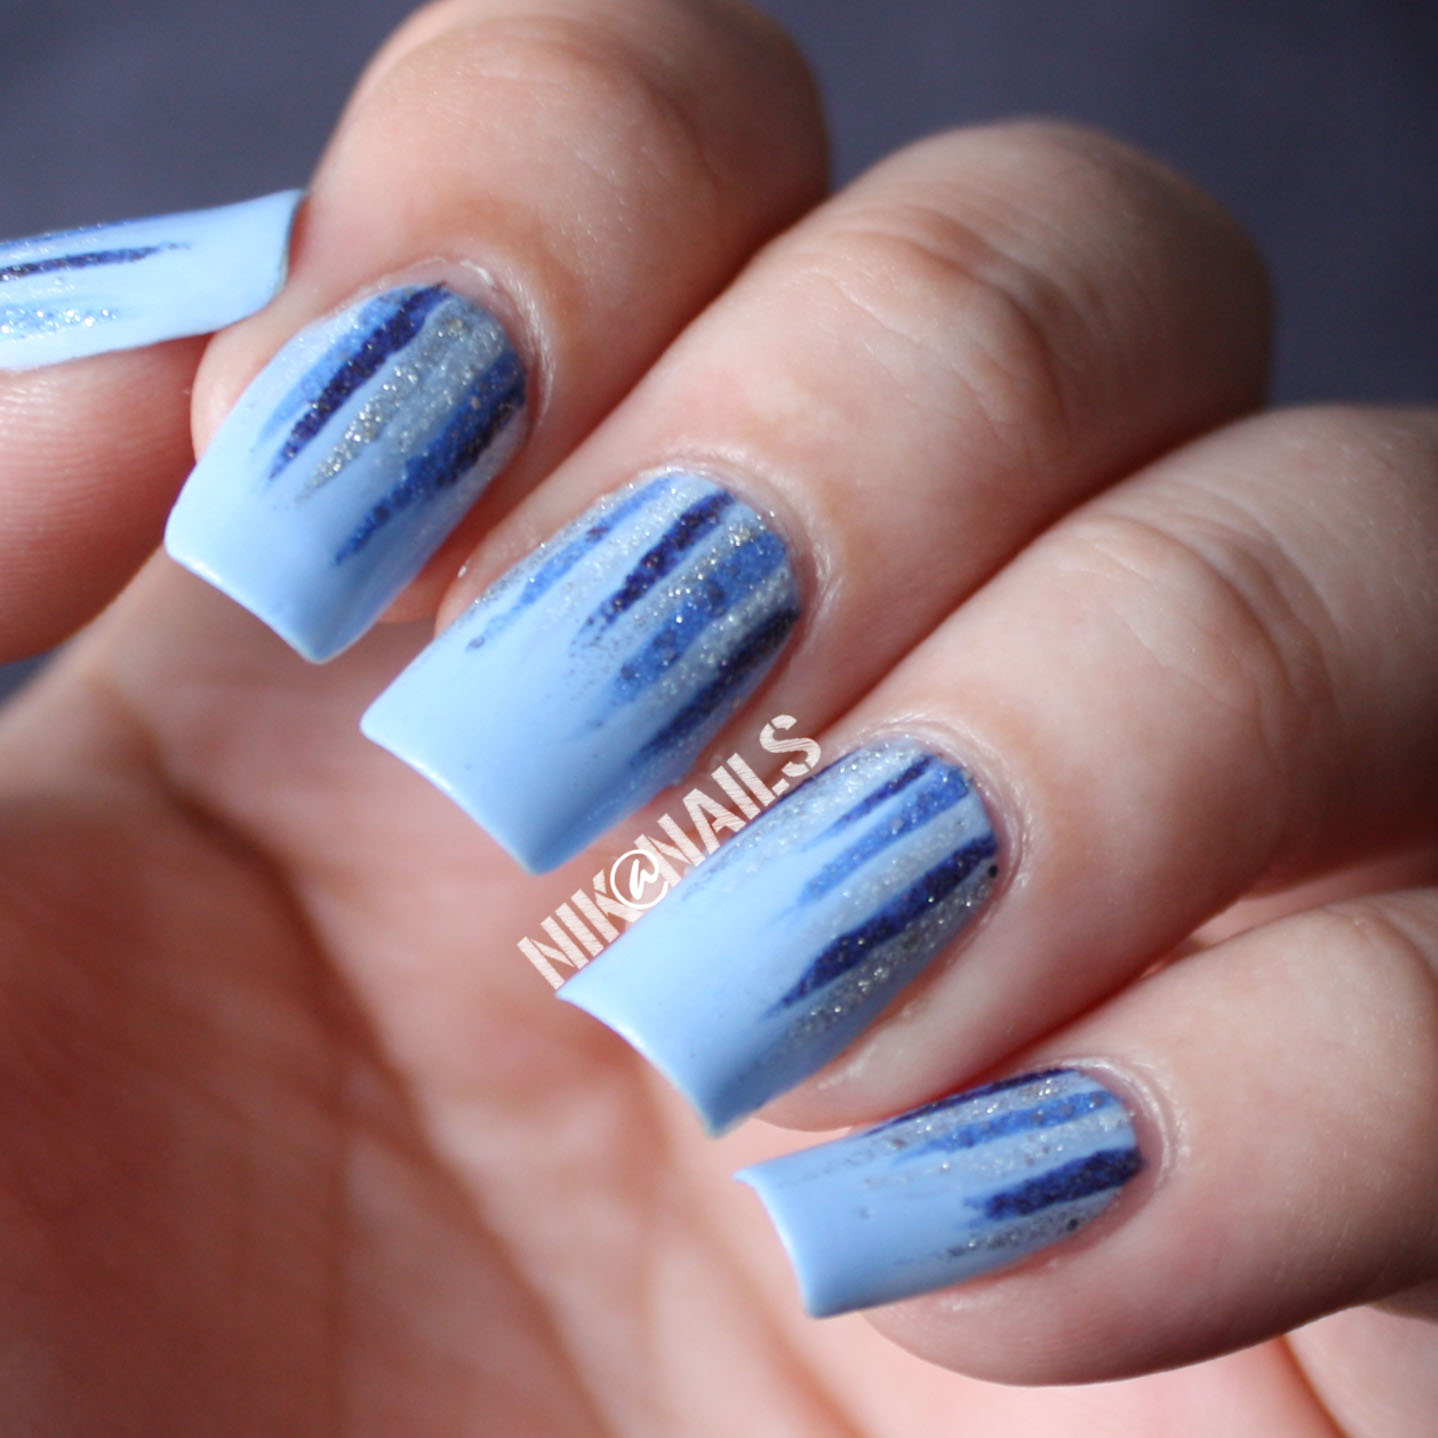 Nail Ideas For April: April Nail Art Challenge Day 11: April Showers